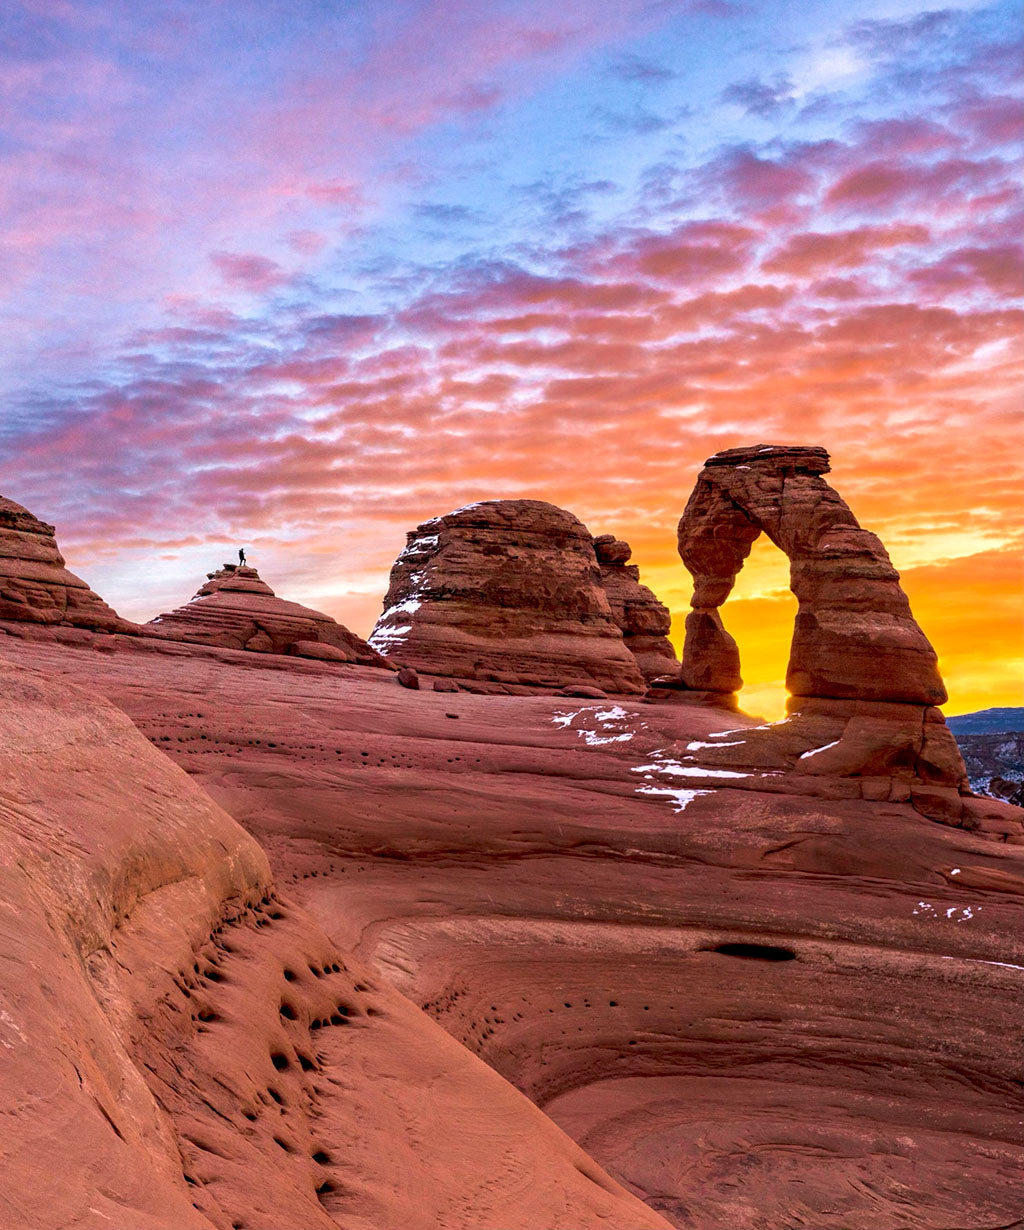 Delicate Arch in Arches National Park with a colorful sunset in the background